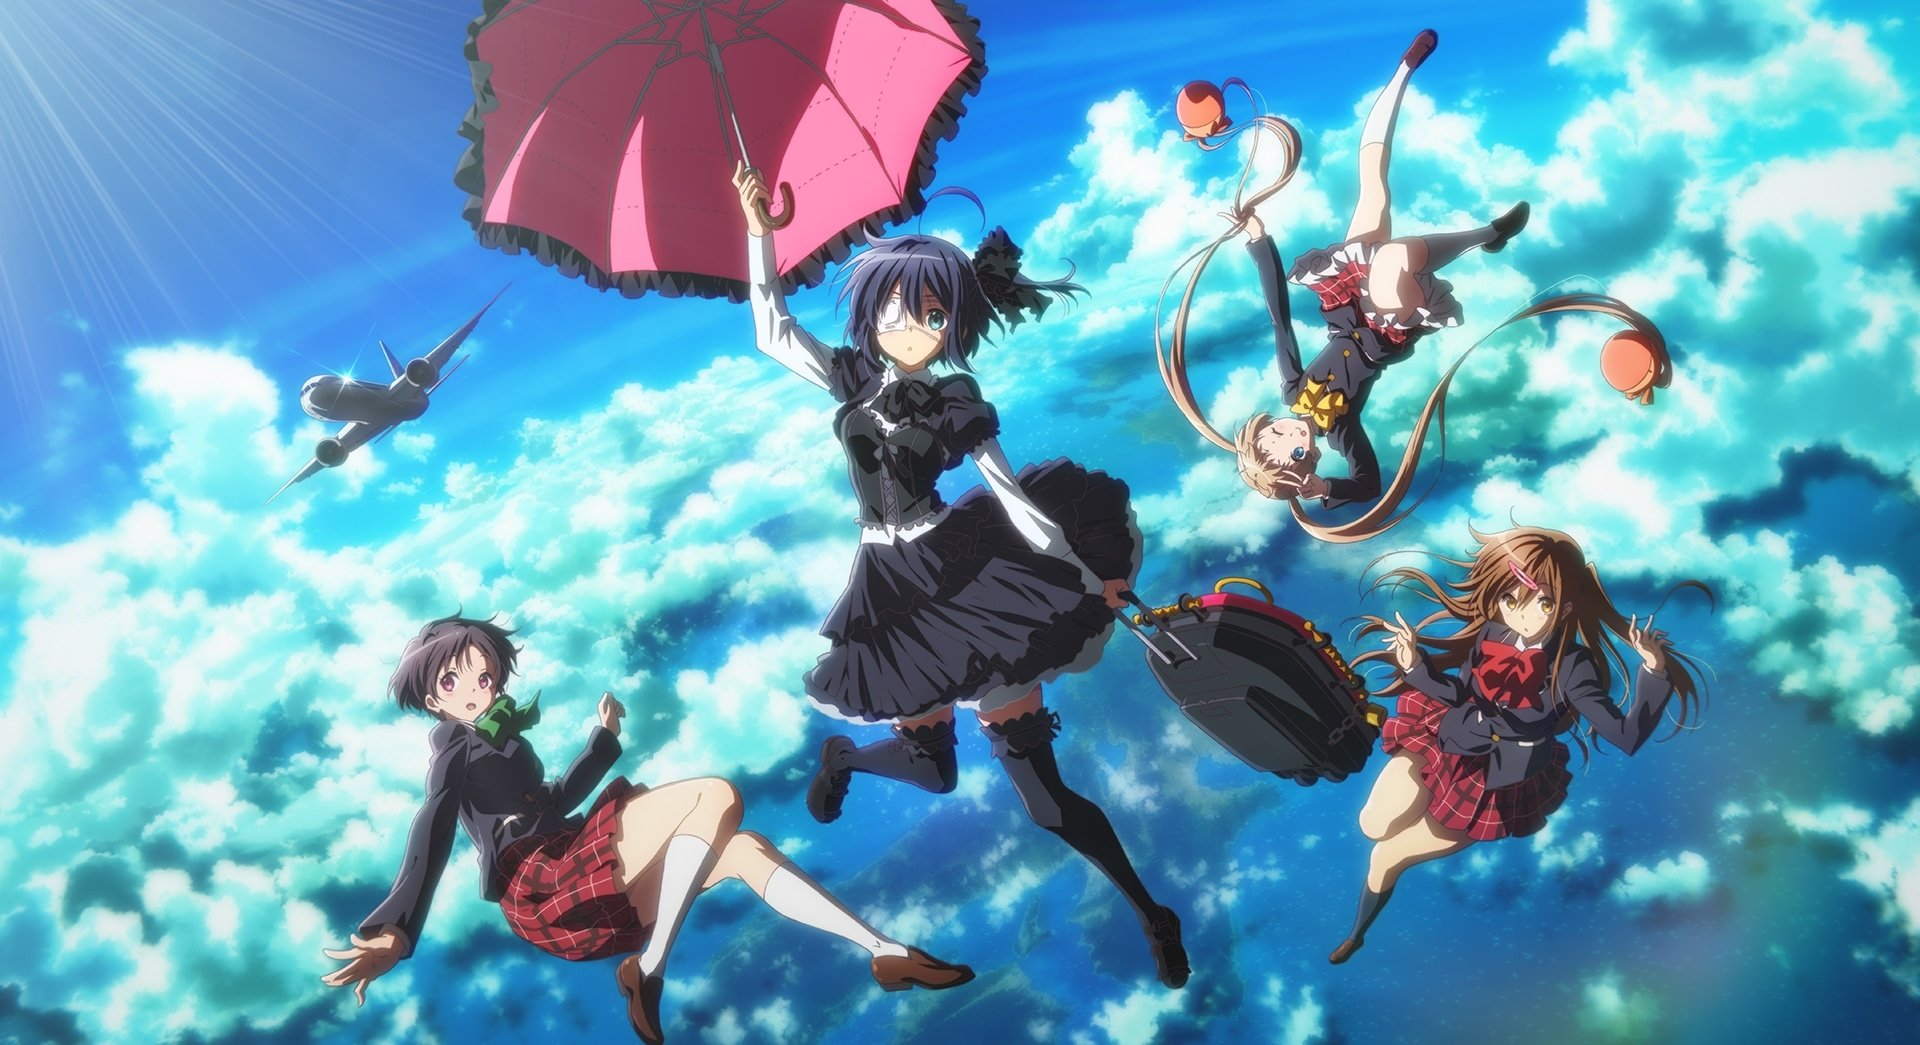 Love Chunibyo Other Delusions Wallpaper And Background Image